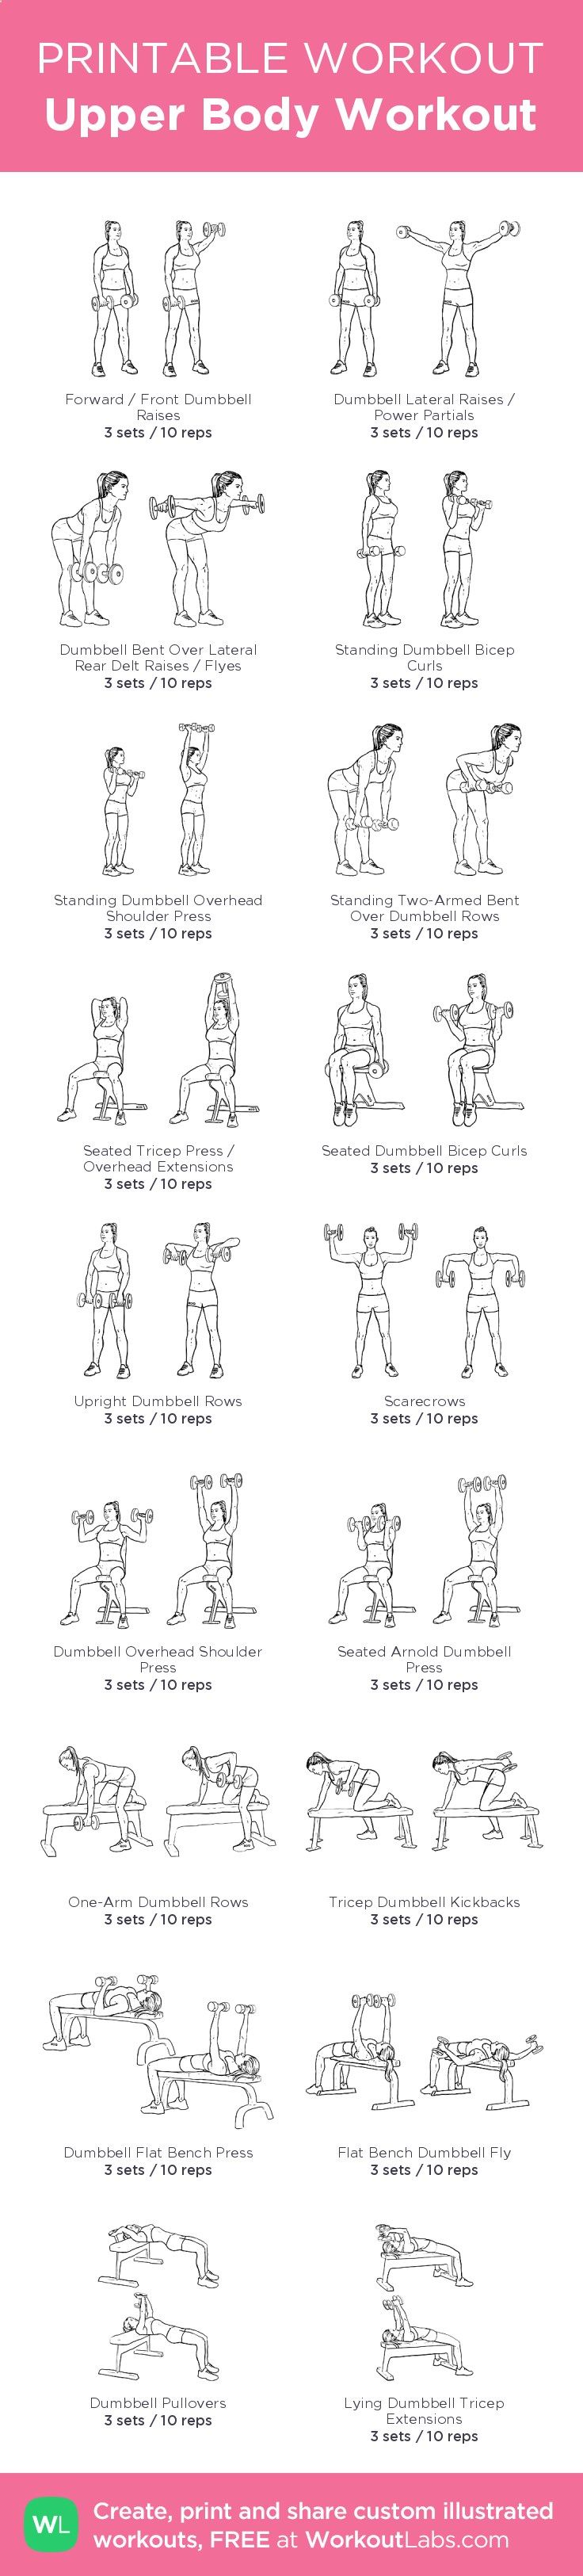 Upper Body Workout – illustrated exercise plan created at